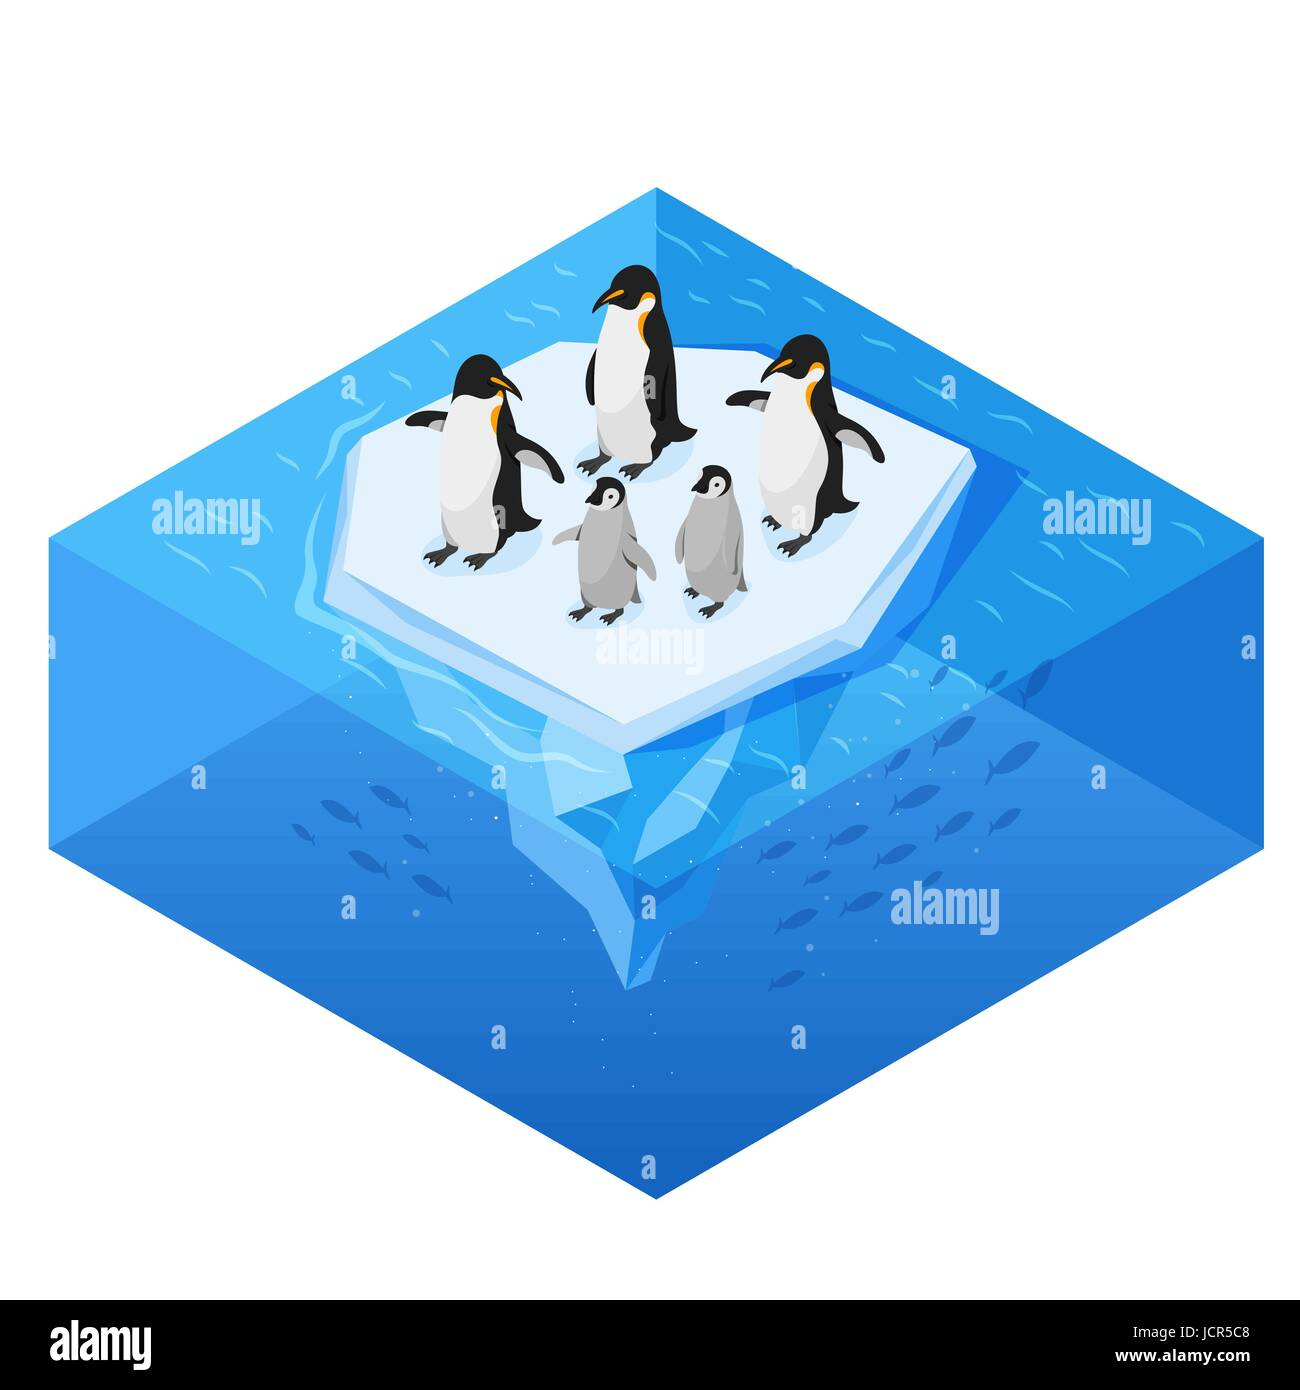 Isometric 3d vector realistic style illustration of penguins on the glacier in the open sea. Isolated on white background. - Stock Vector